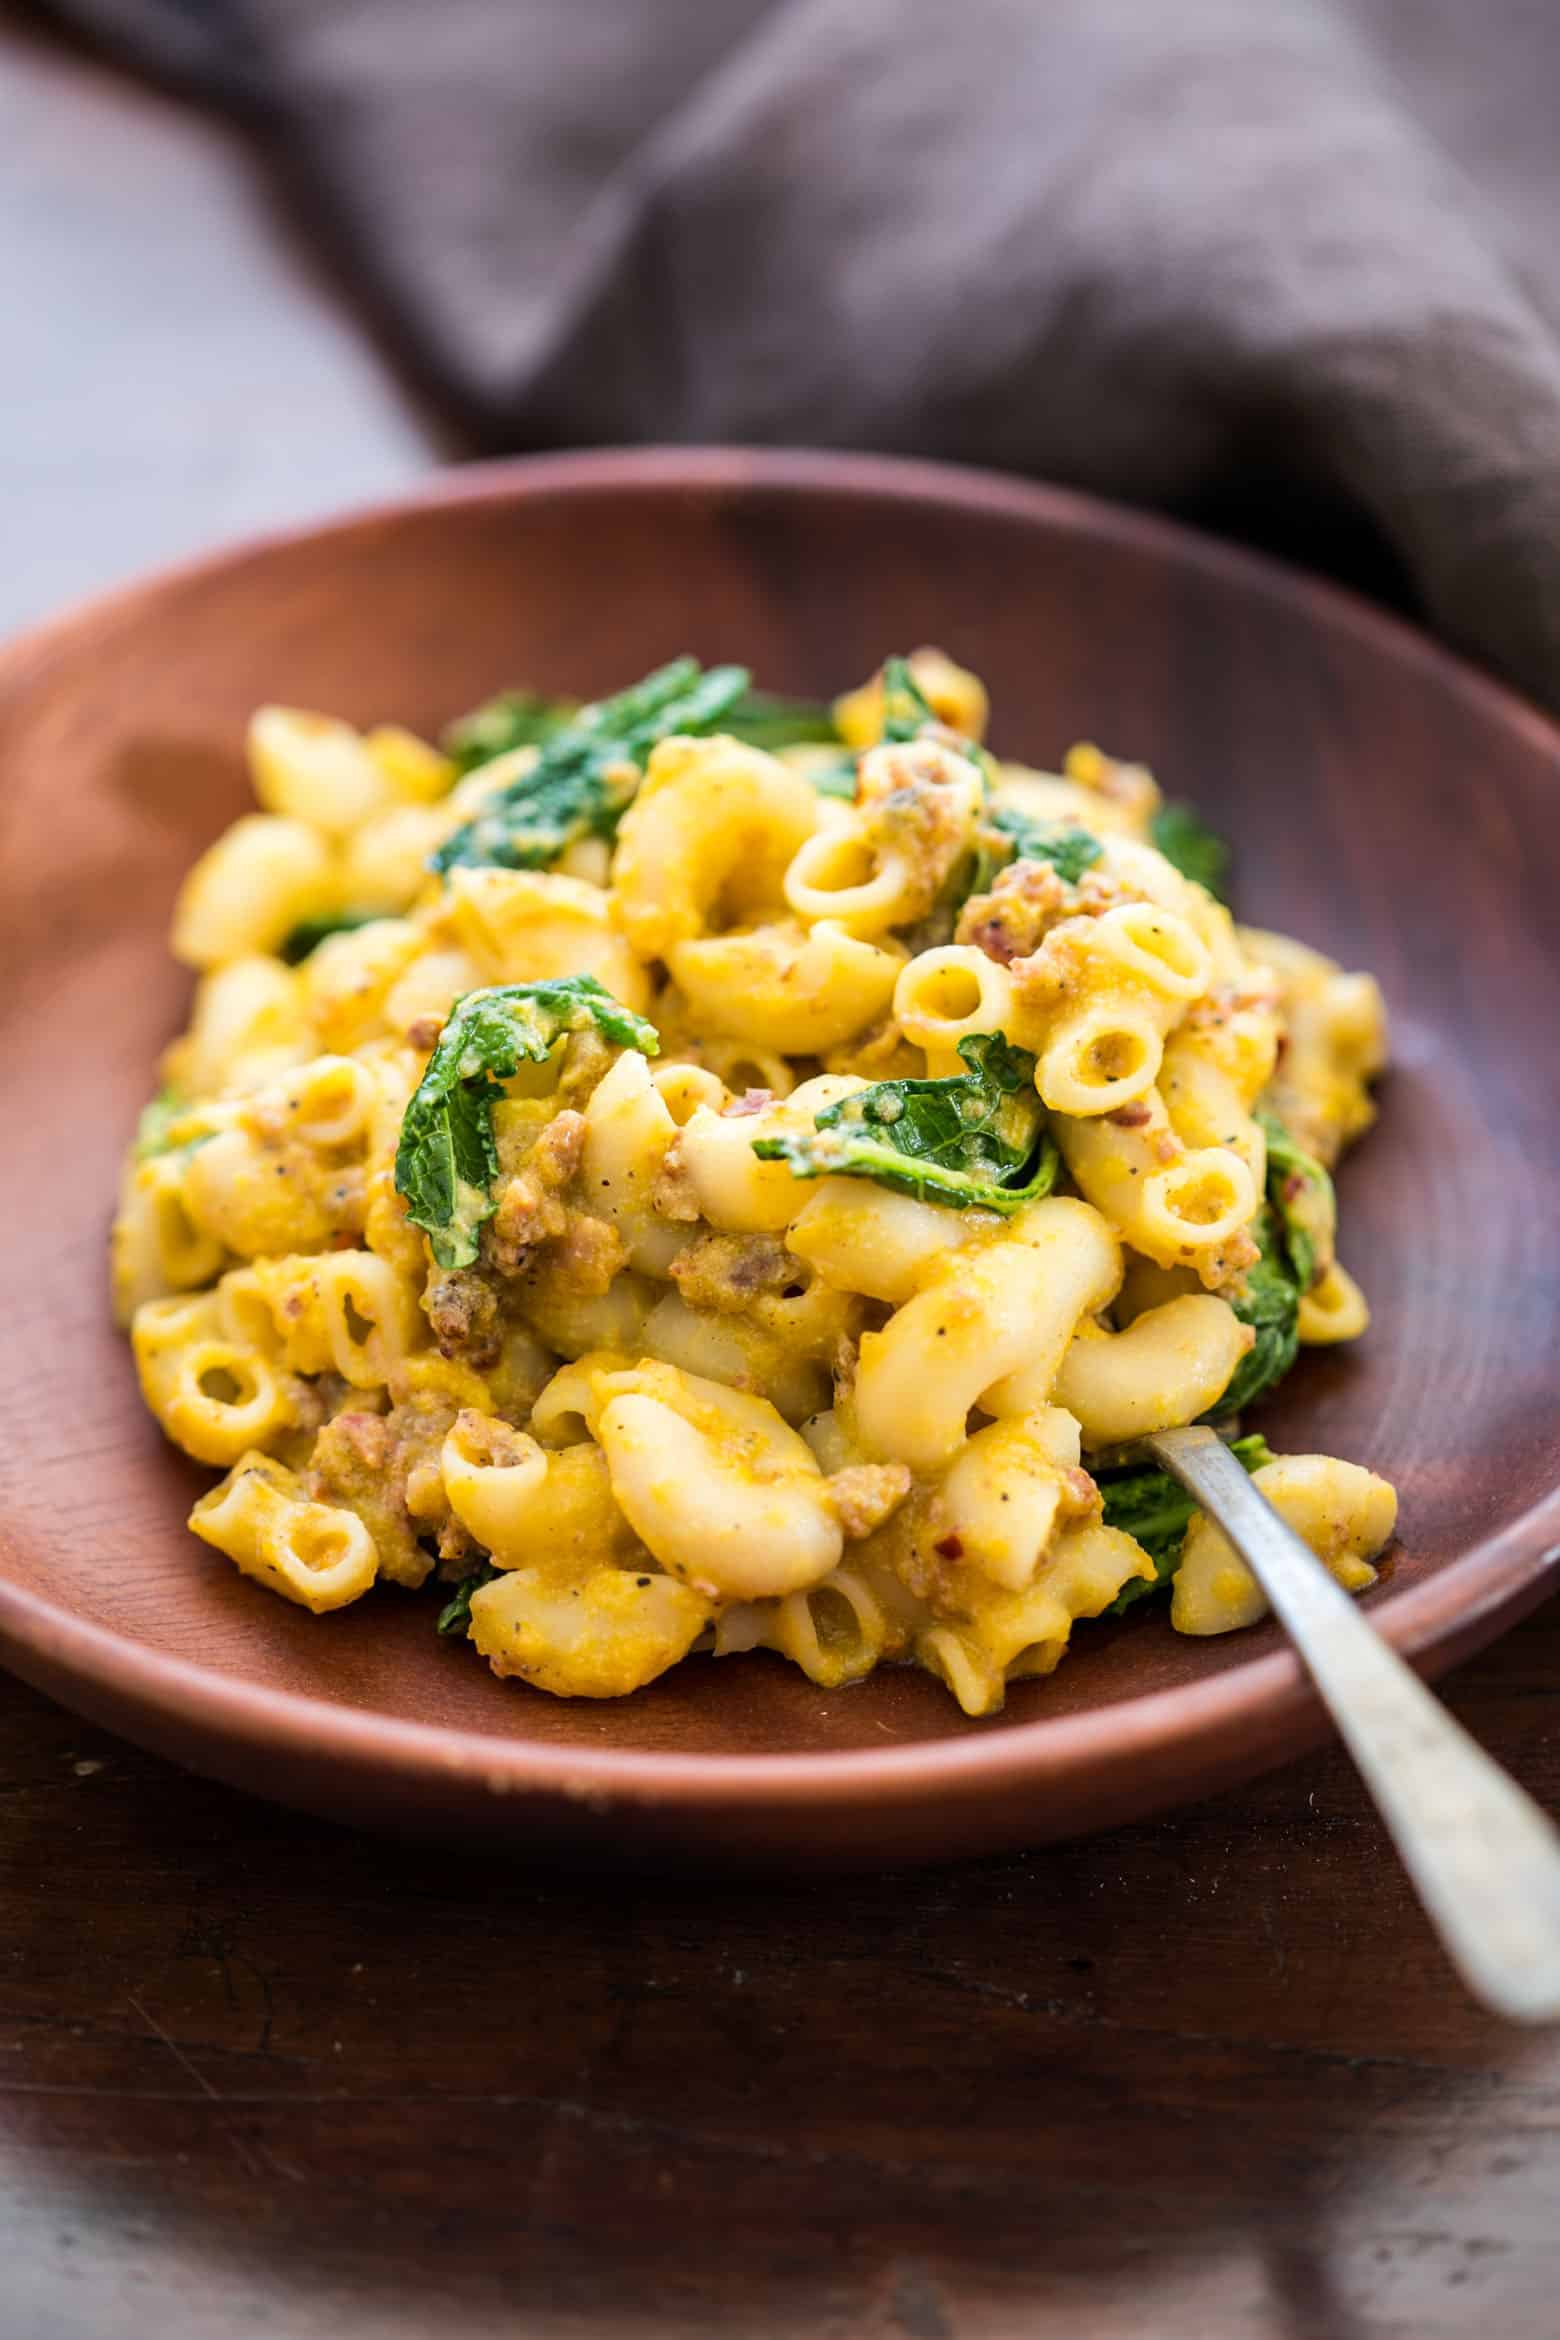 Creamy pumpkin sausage mac and cheese with kale is pure comfort food! It's a fast, easy dinner recipe when you crave homemade pasta